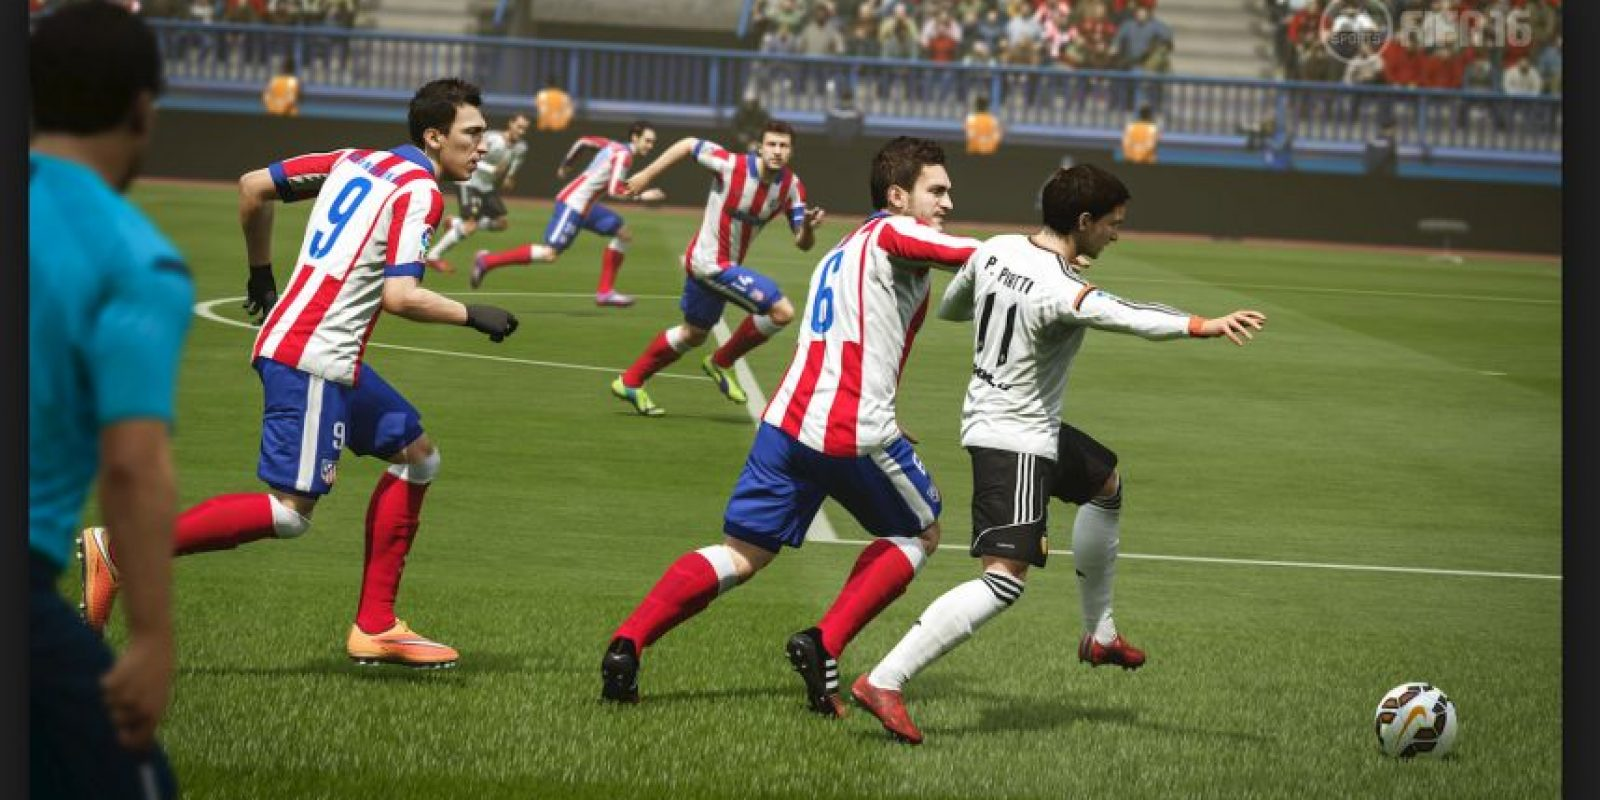 FIFA 16: Mejora en la inteligencia artificial de las defensas Foto: EASport